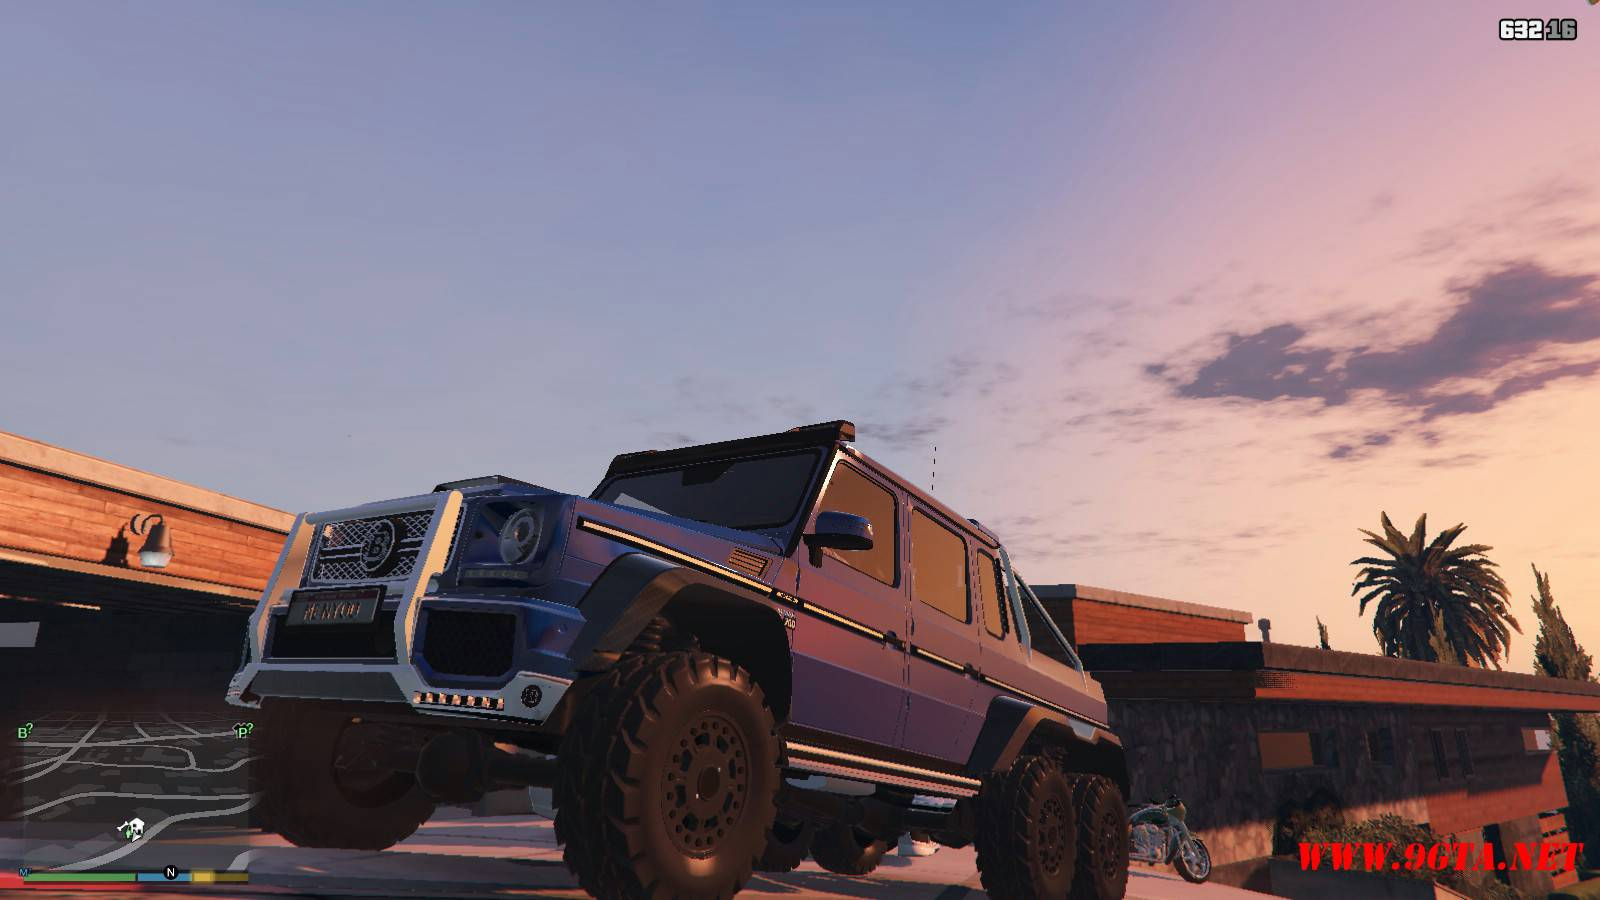 Barbus 700 G63 AMG GTA5 Mods (15)